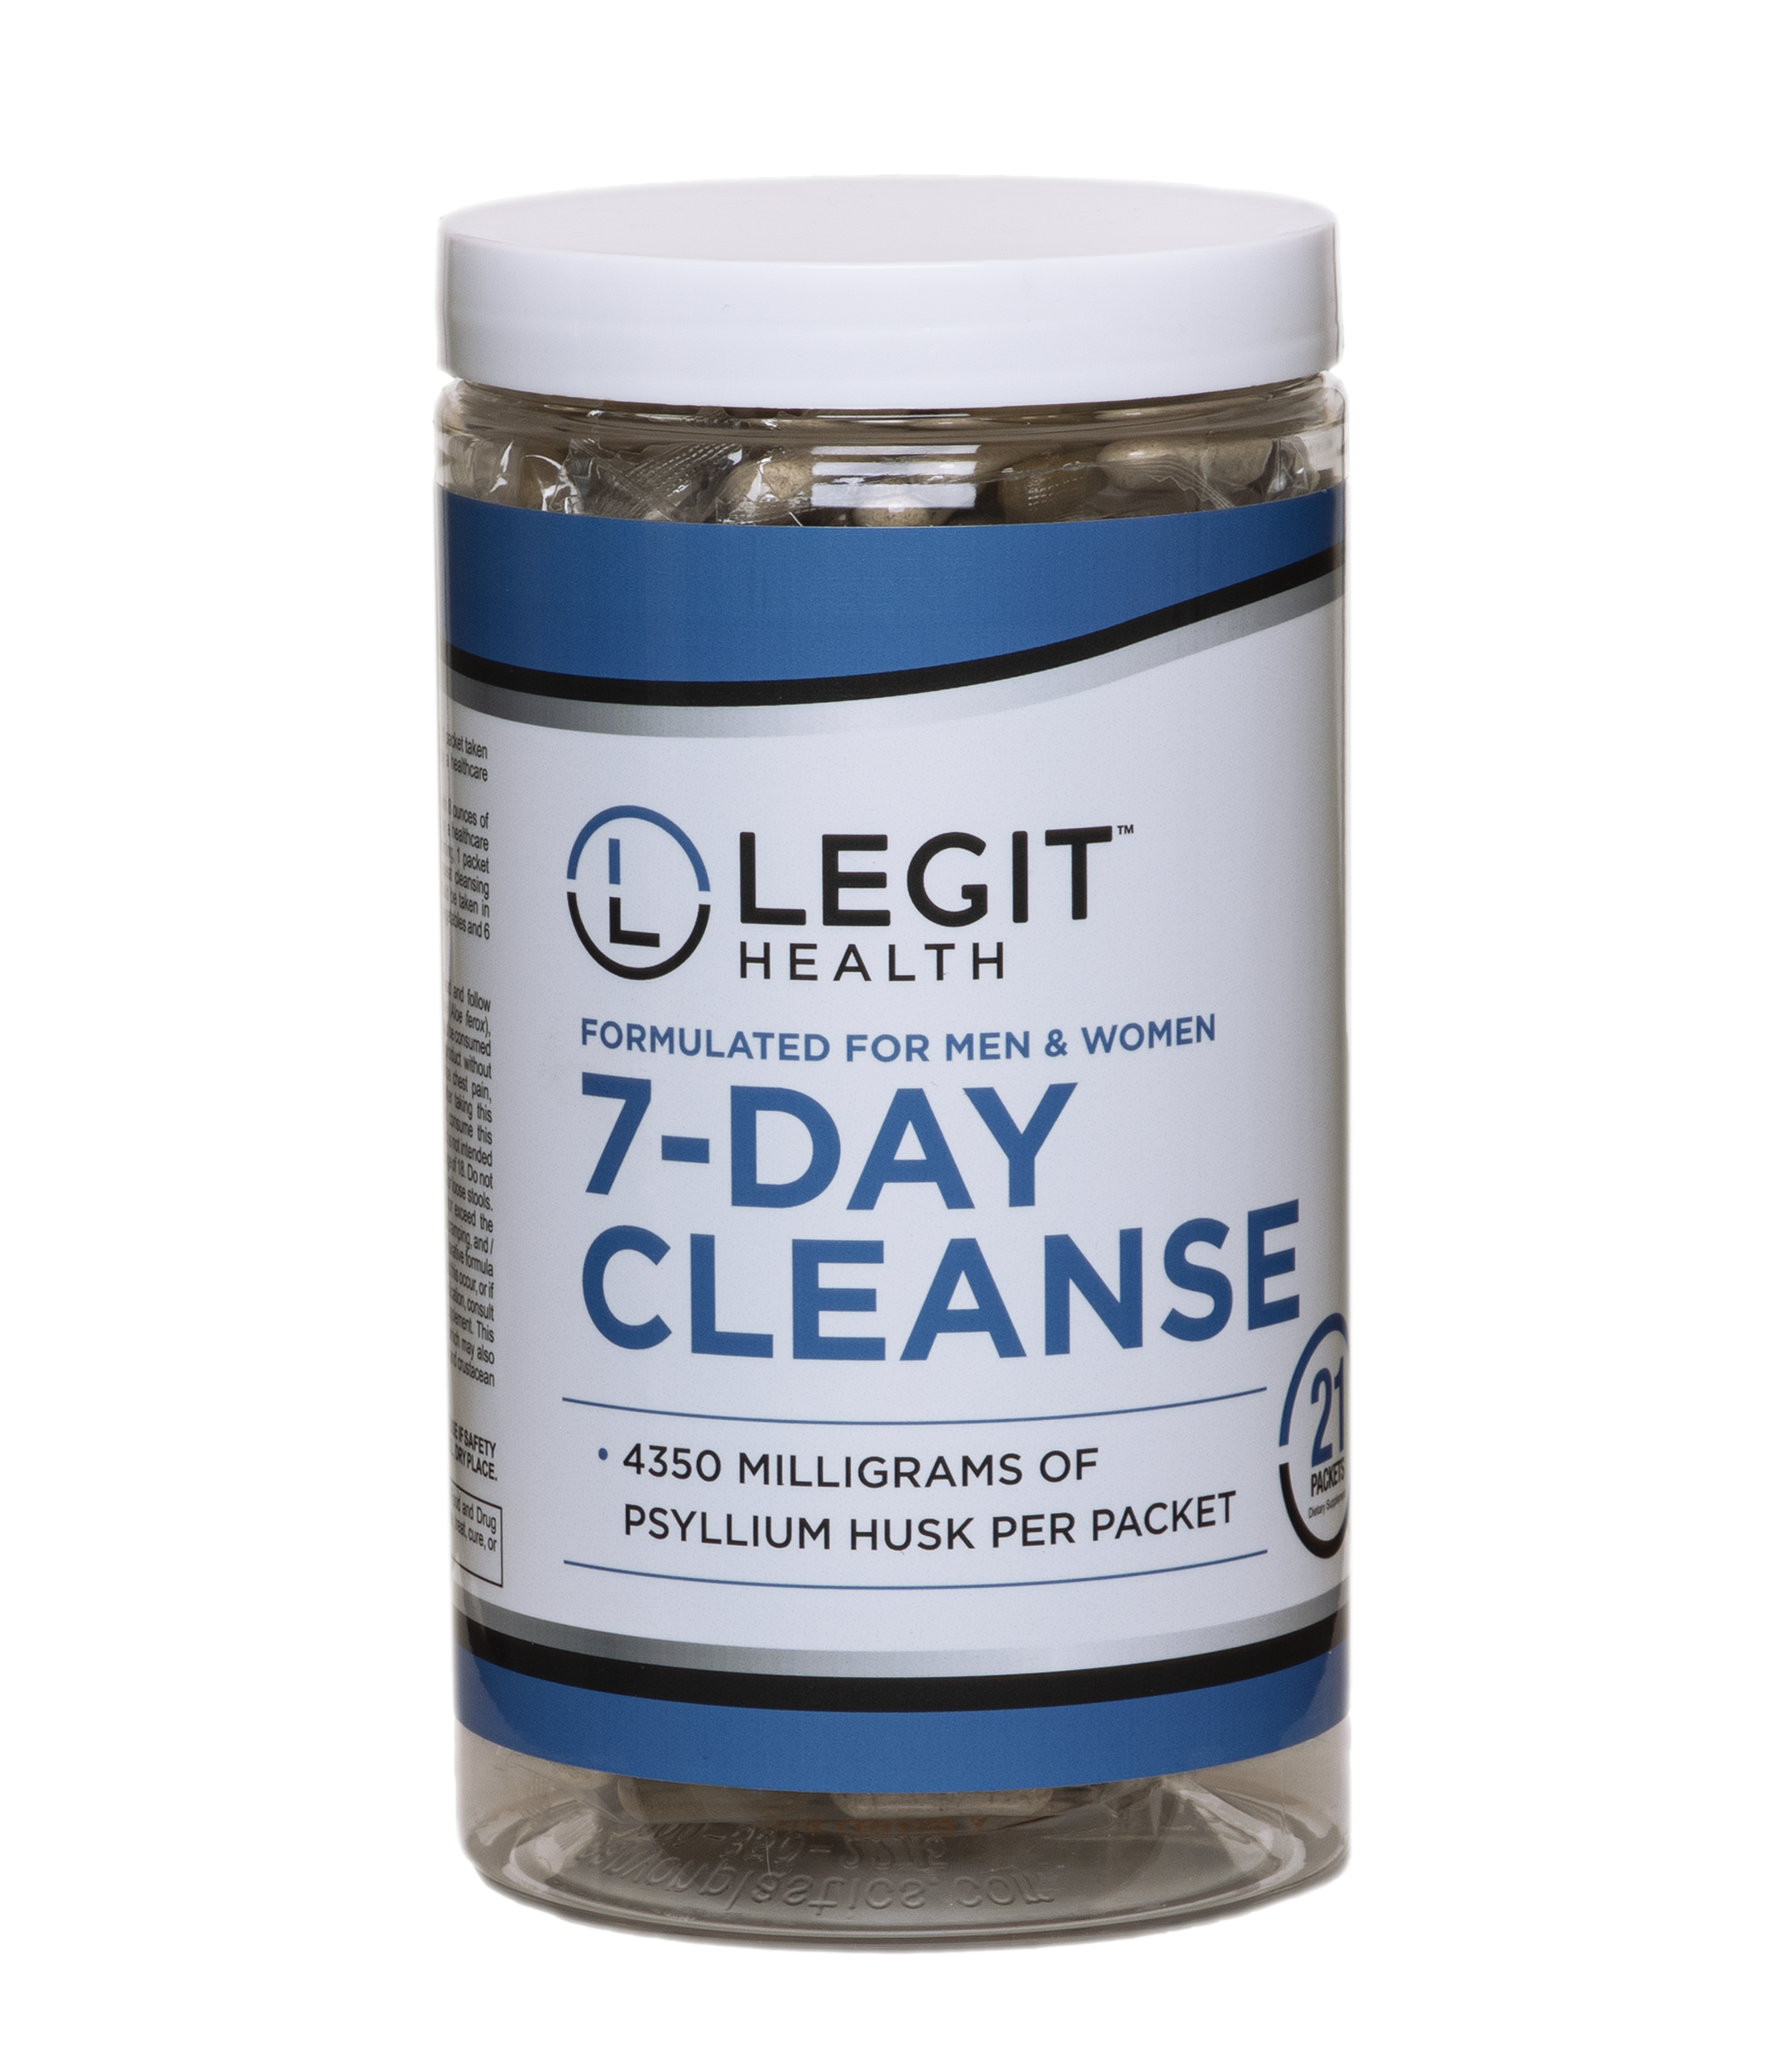 Legit 7-Day Cleasne 21 Packs